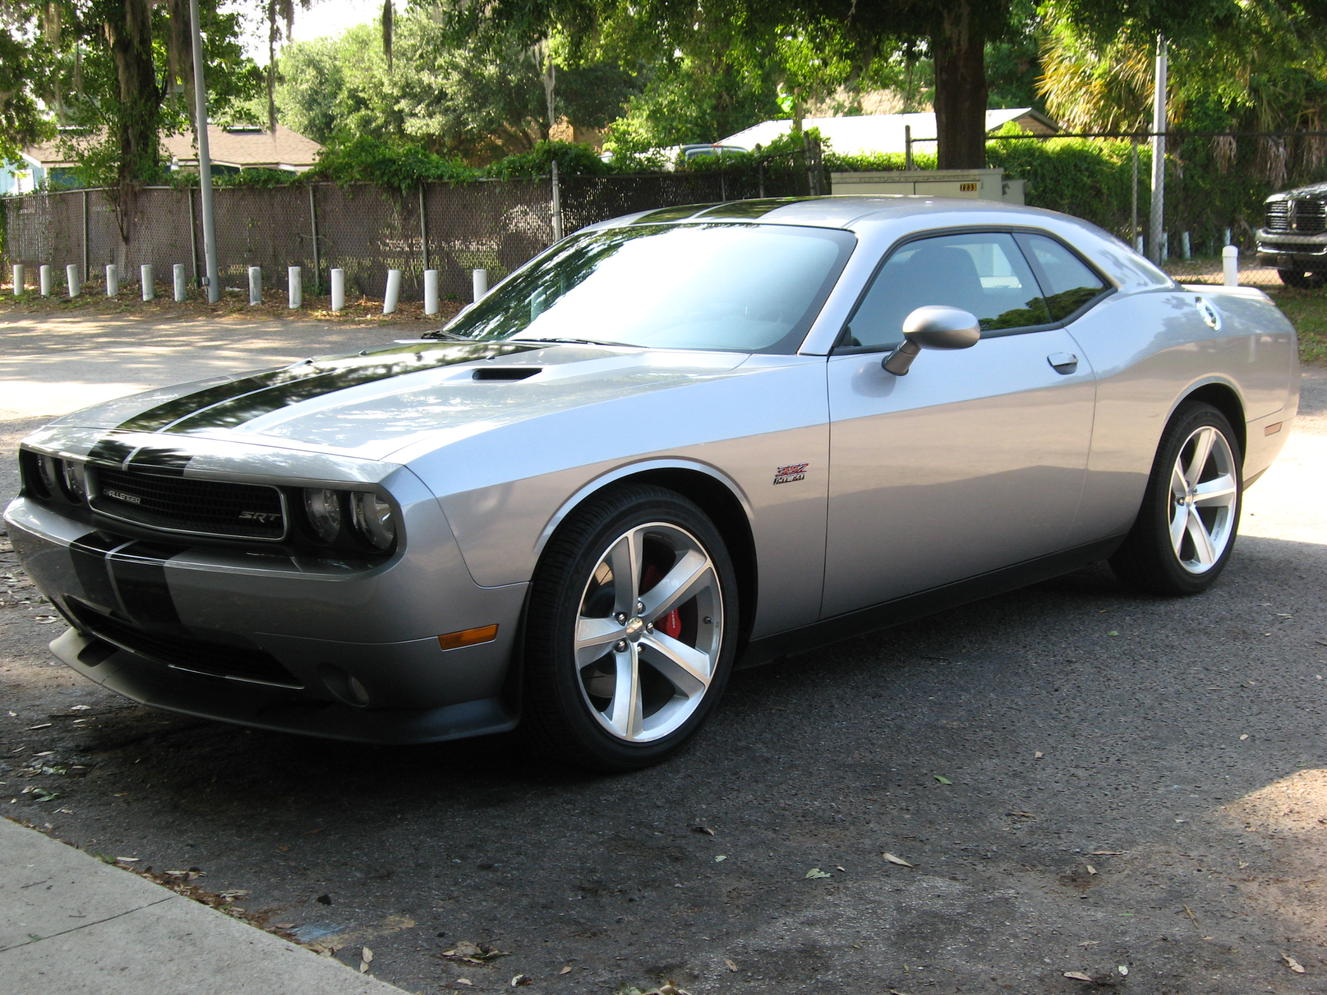 2011 dodge challenger srt8 392 timeslip scan. Black Bedroom Furniture Sets. Home Design Ideas